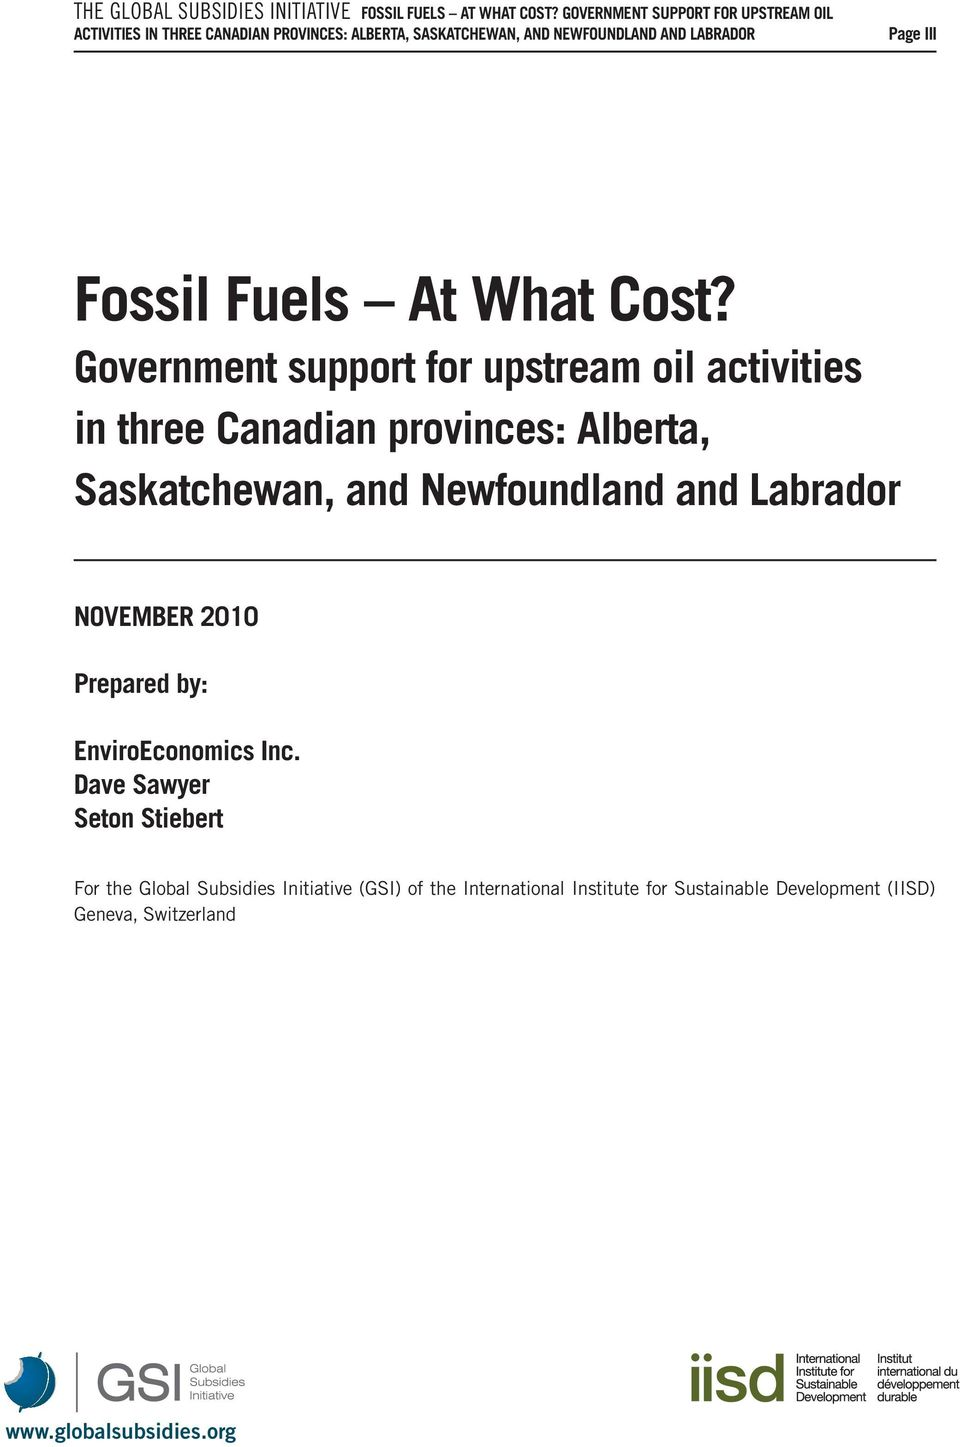 Government support for upstream oil activities in three Canadian provinces: Alberta, Saskatchewan, and